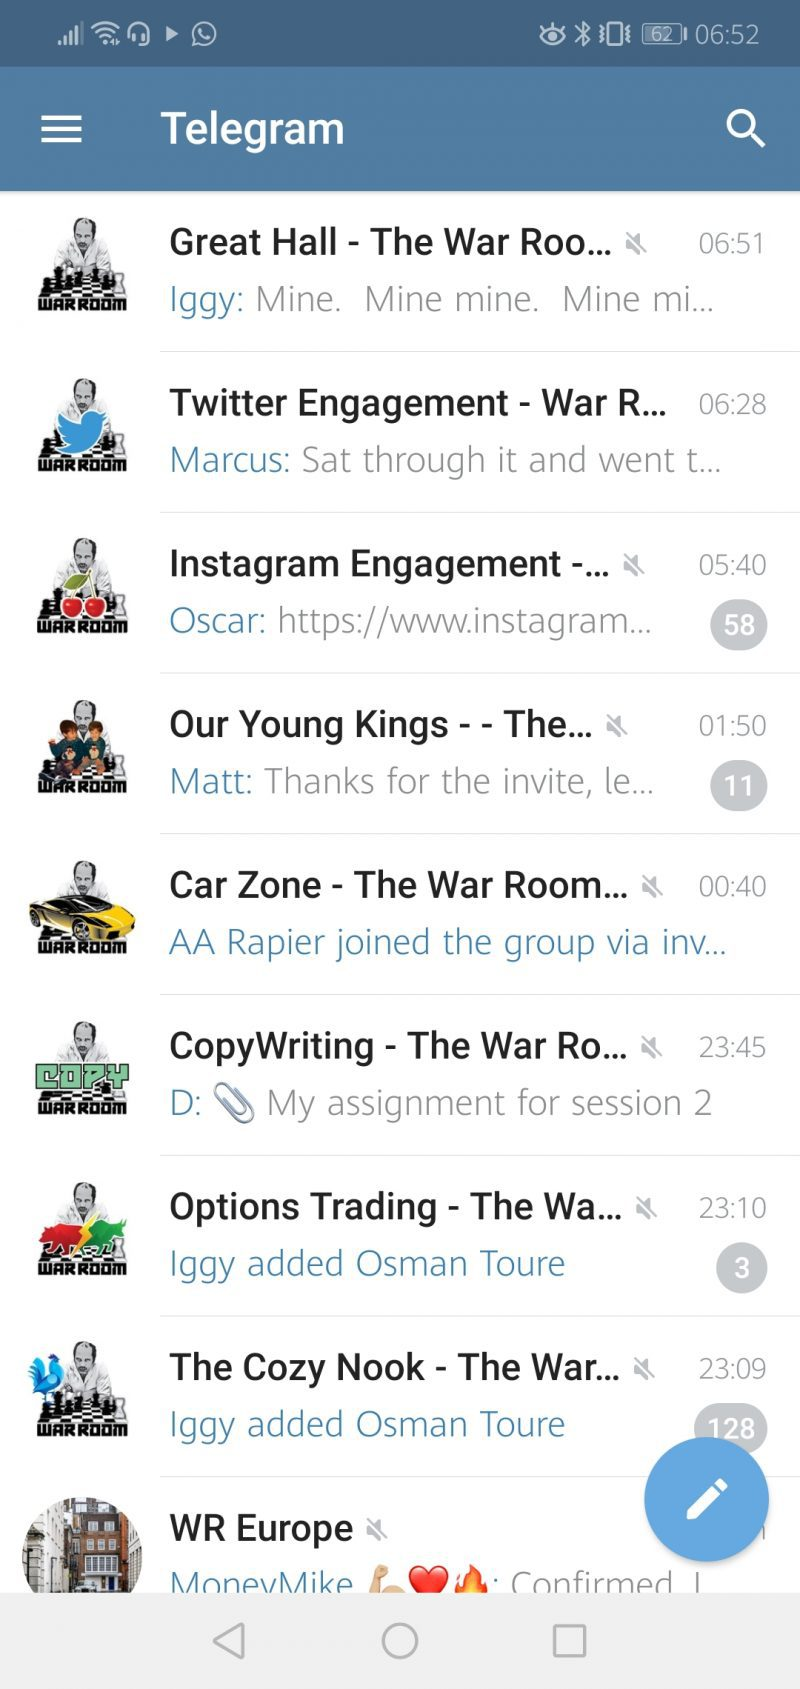 A screenshot of the War room review in Telegram.